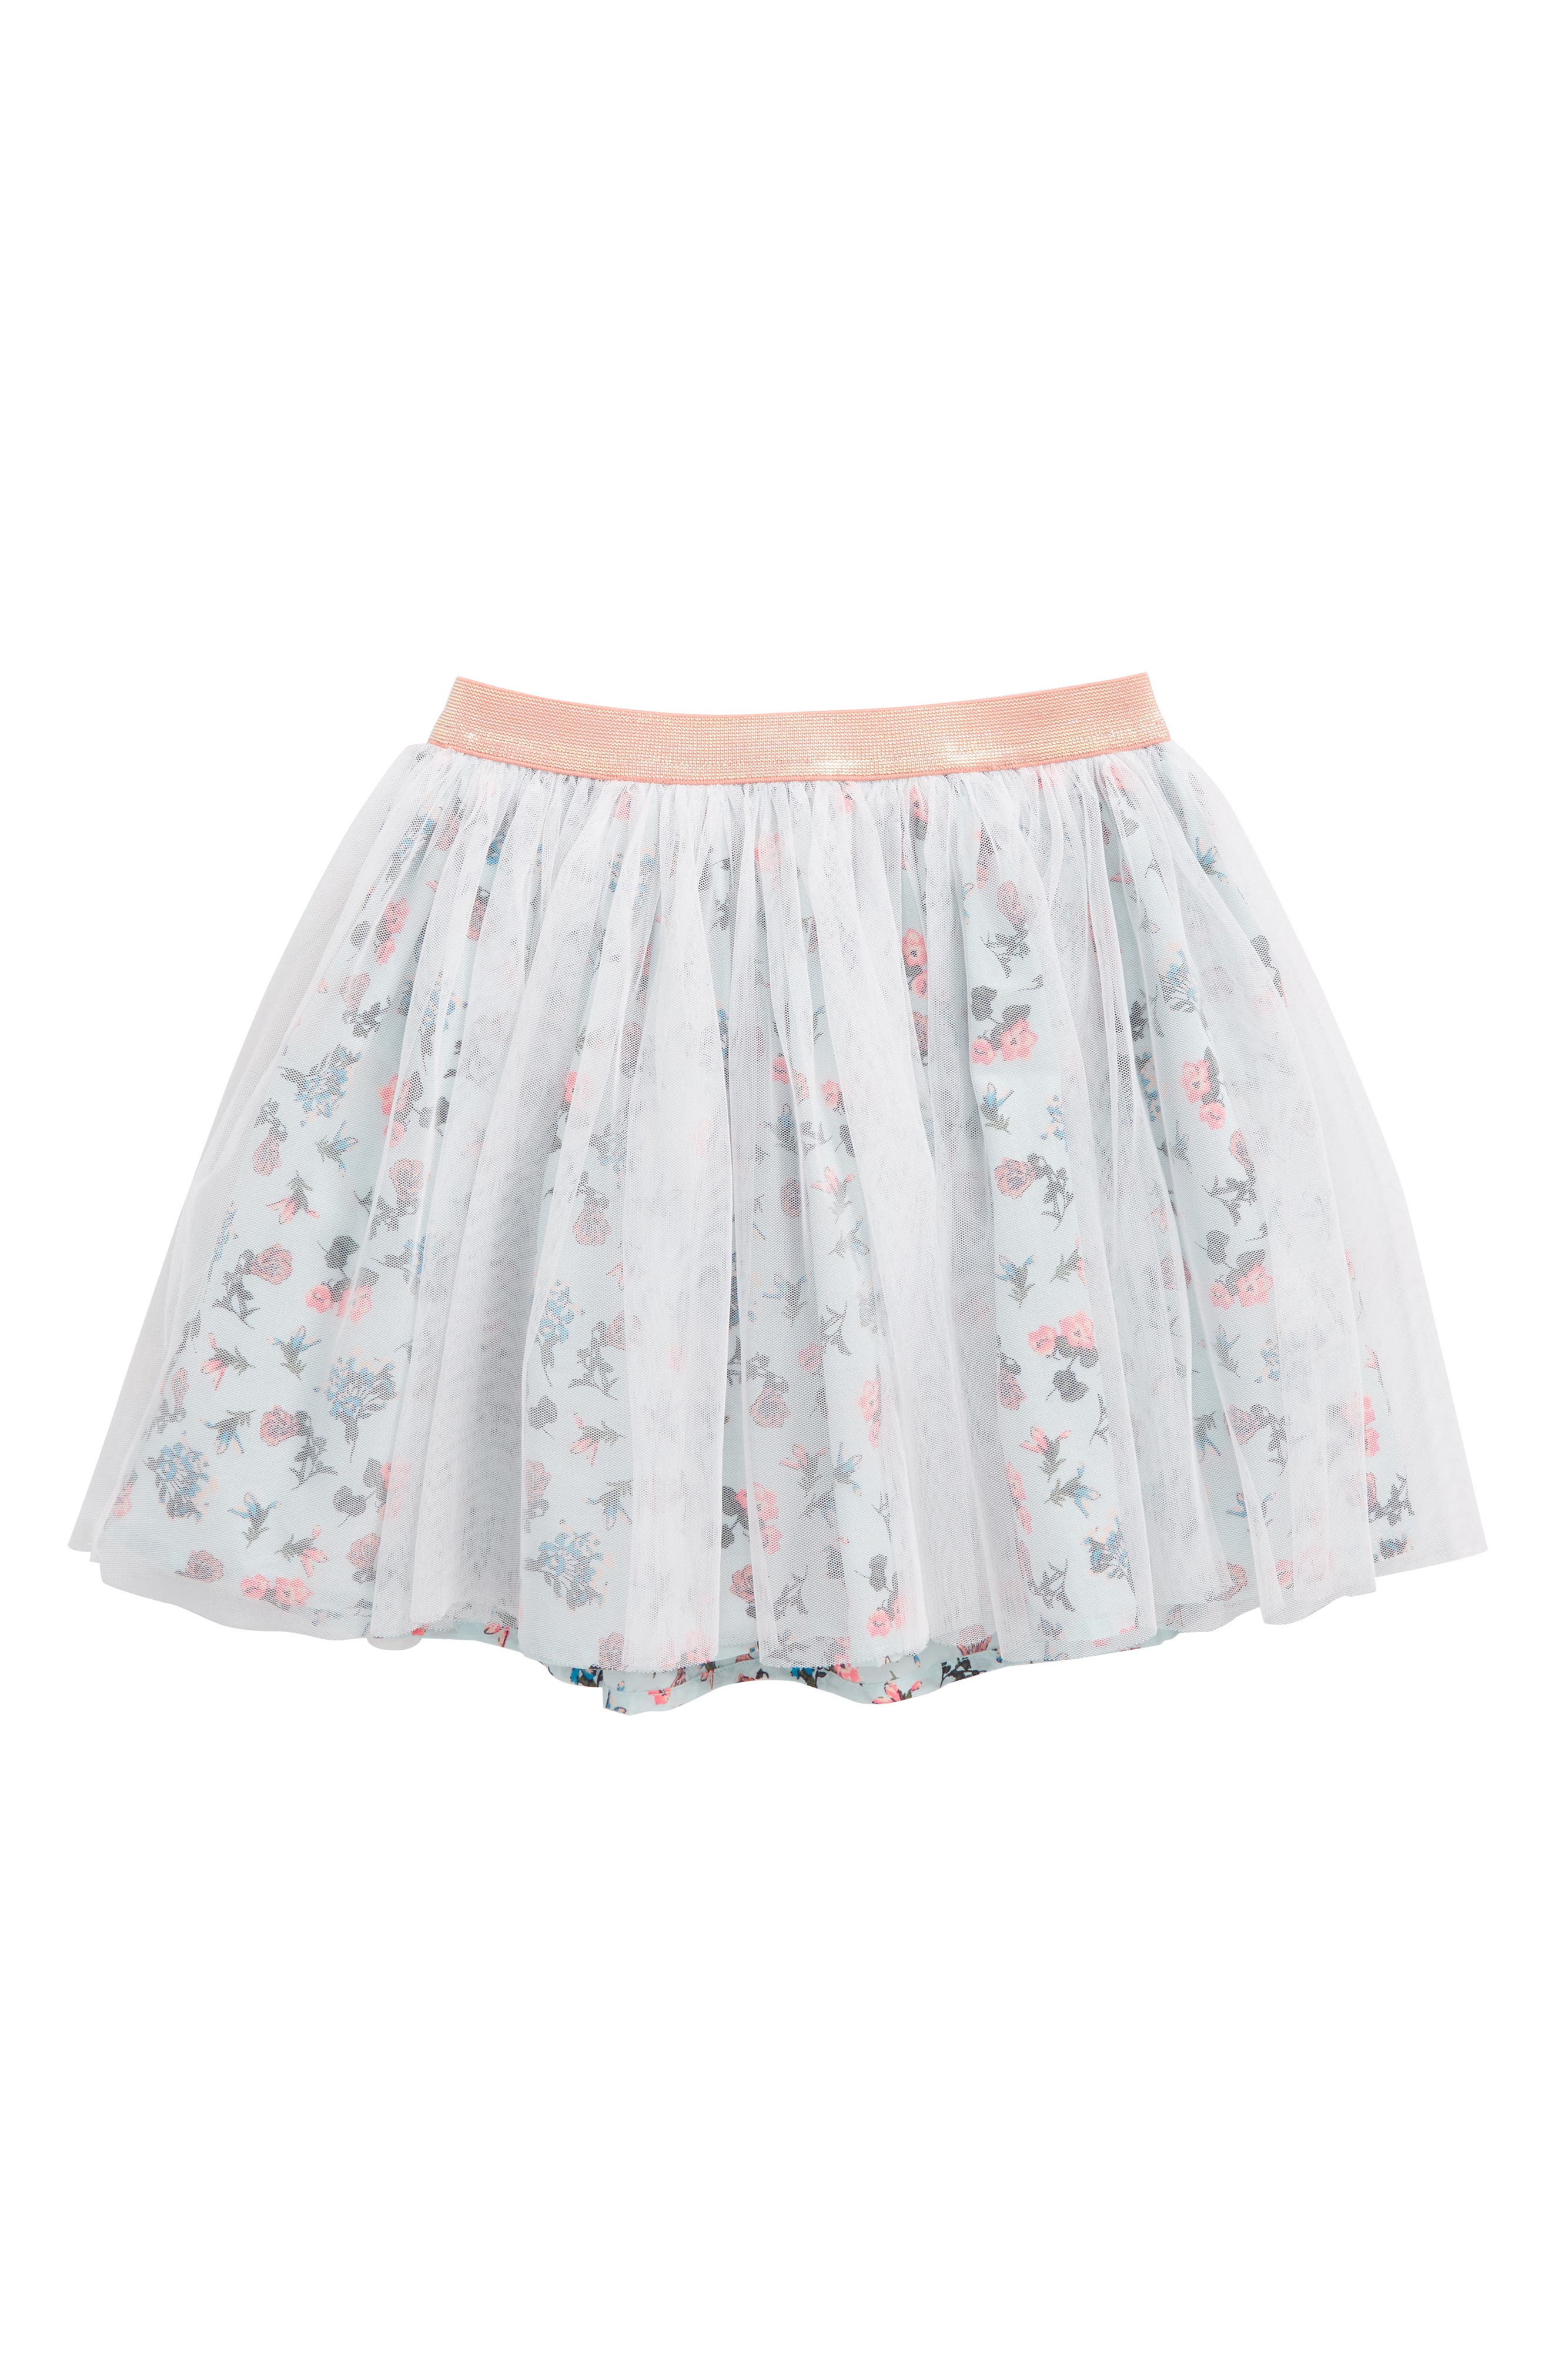 Floral Tulle Skirt,                             Main thumbnail 1, color,                             Teal Fair Spring Blooms